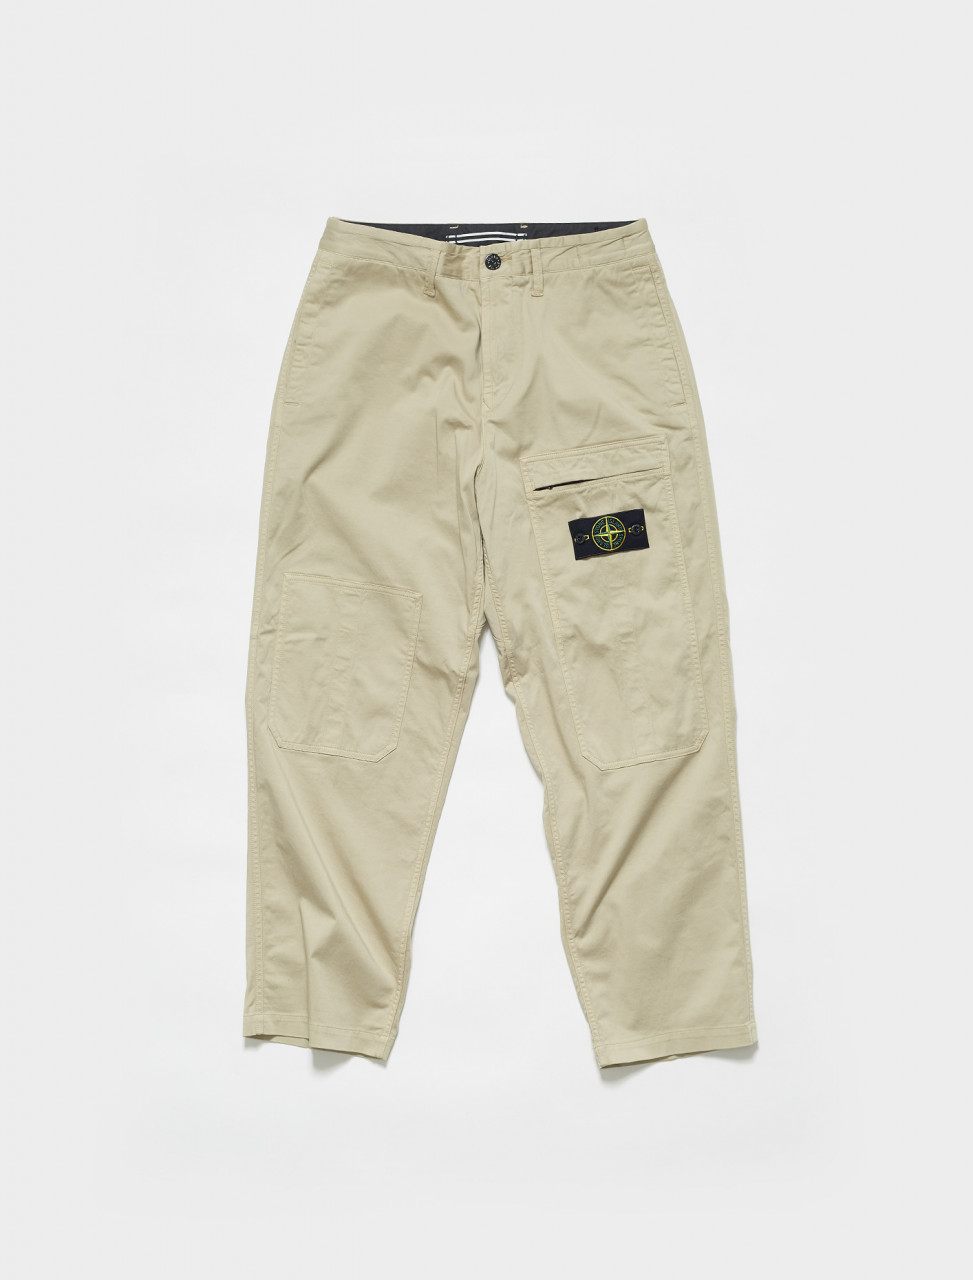 MO741530609 STONE ISLAND LOOSE FIT TROUSERS SABBIA